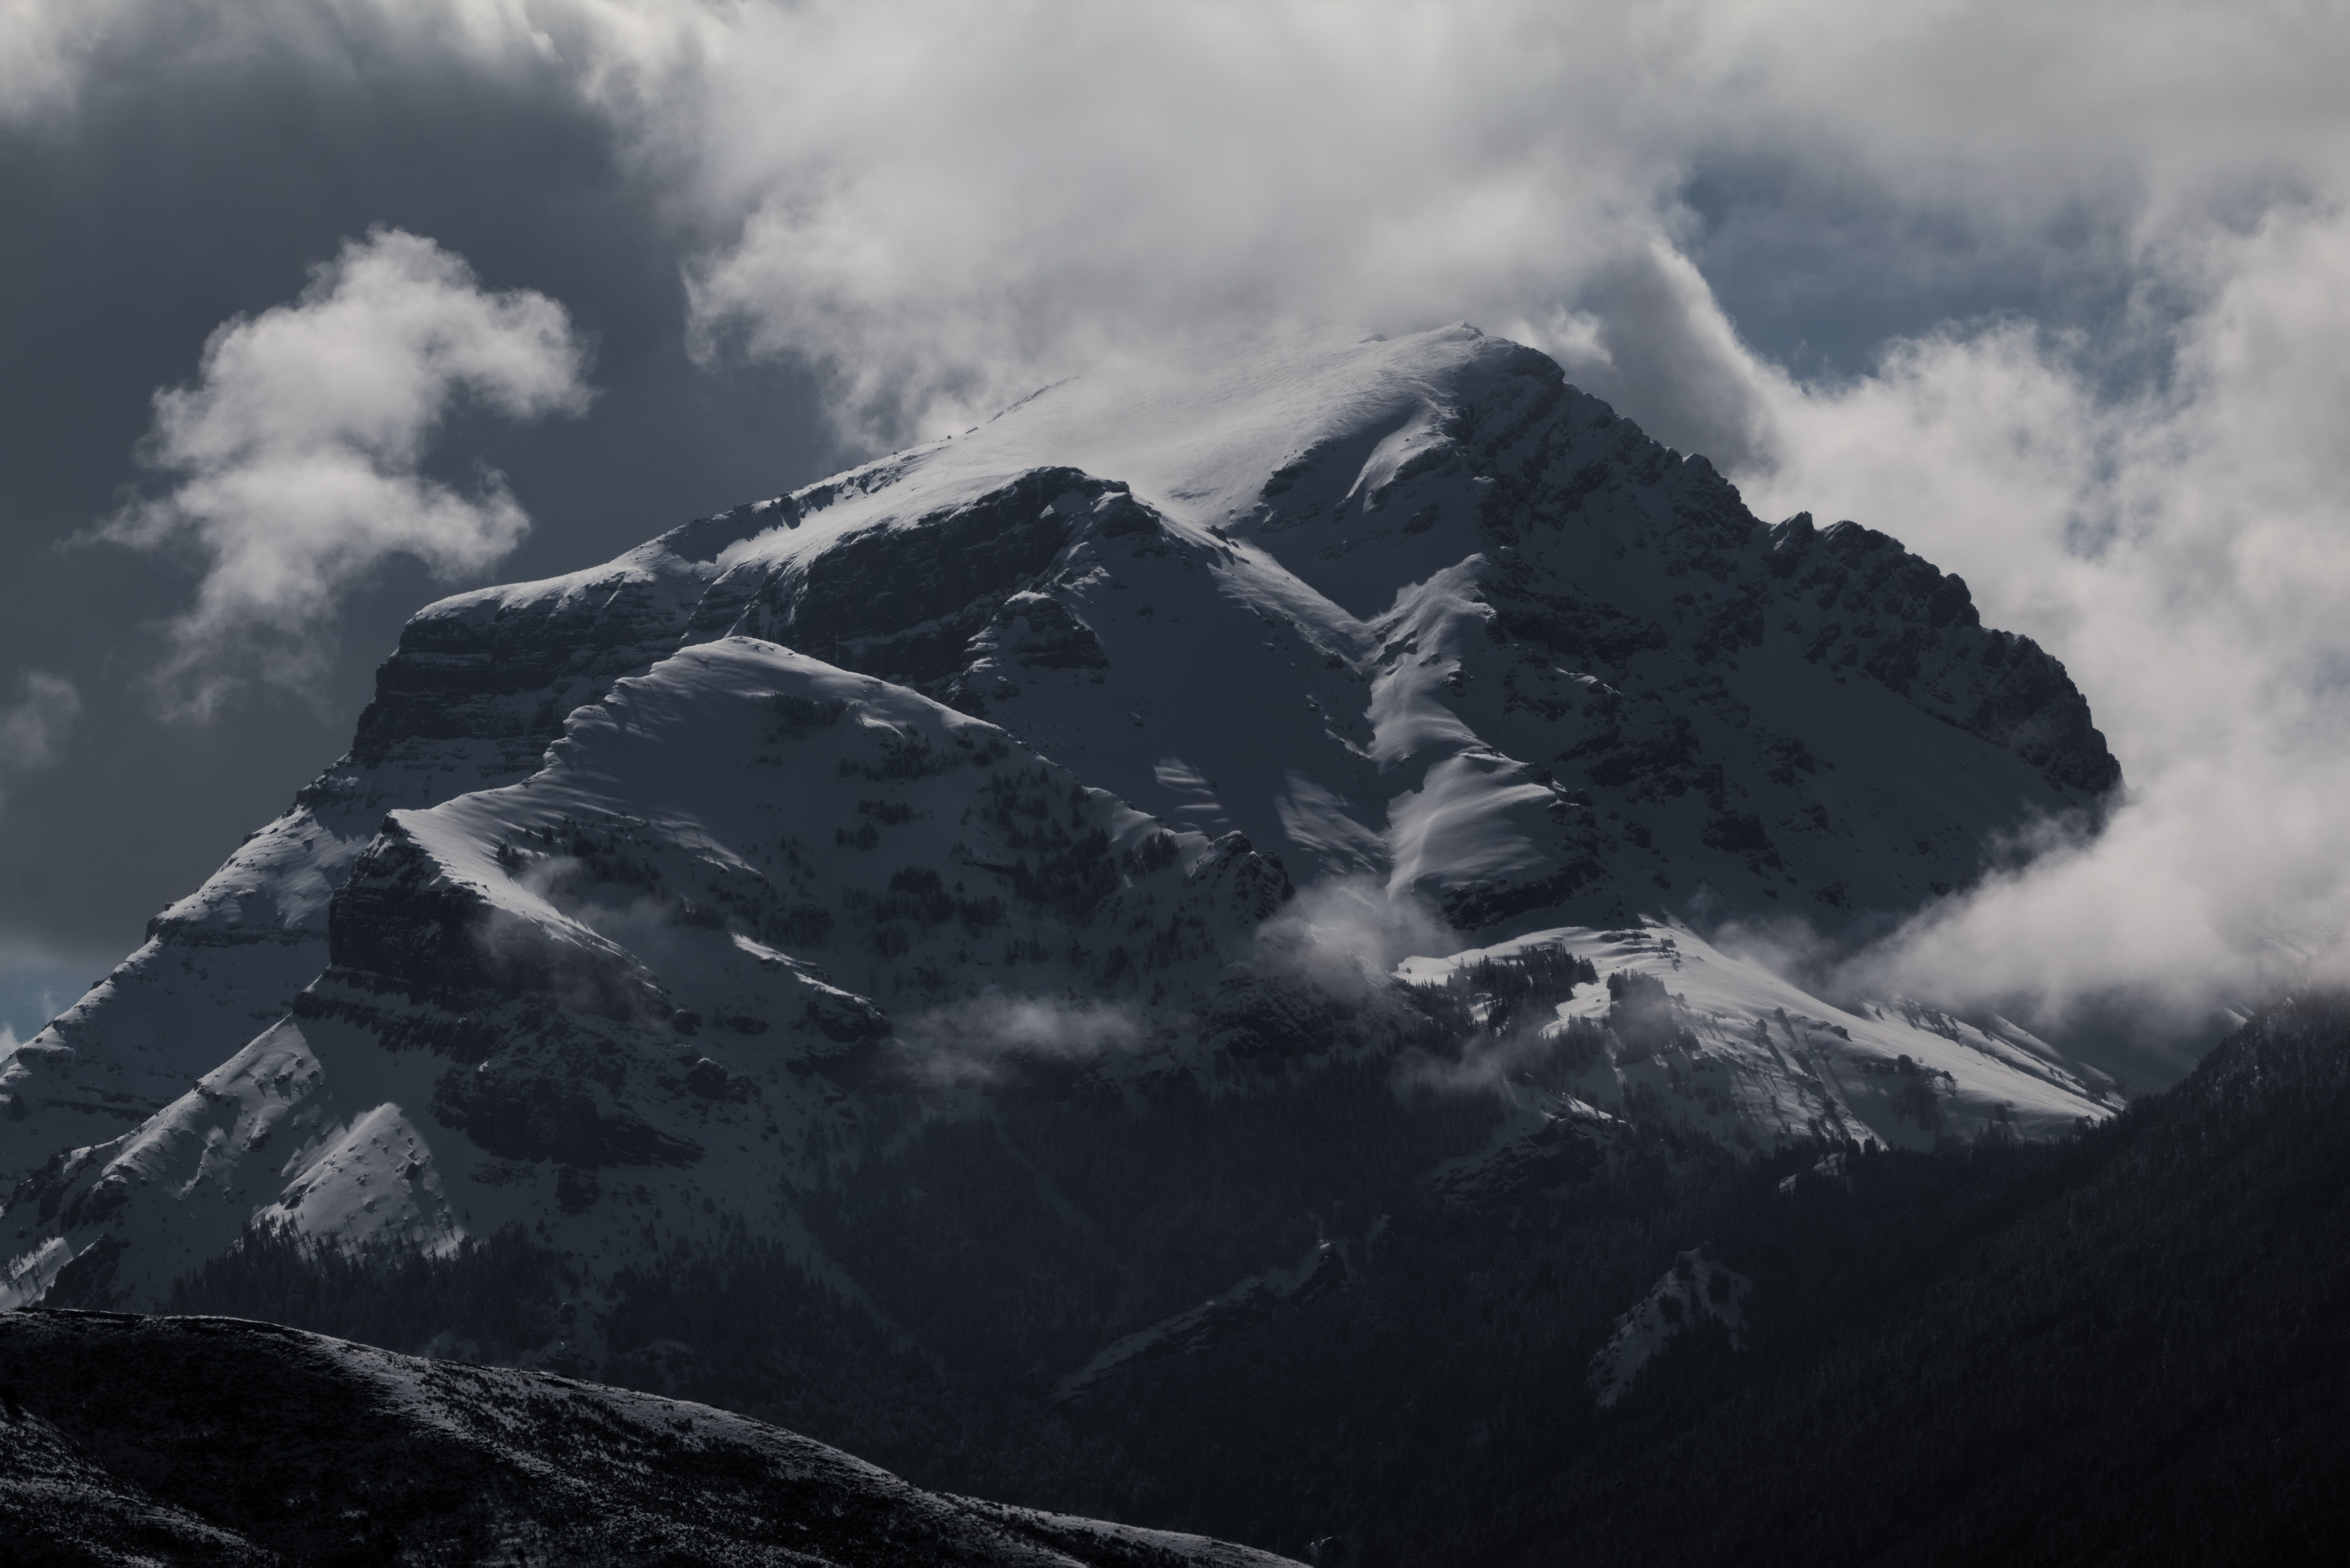 A dim shot of an imposing mountain peak shrouded by clouds